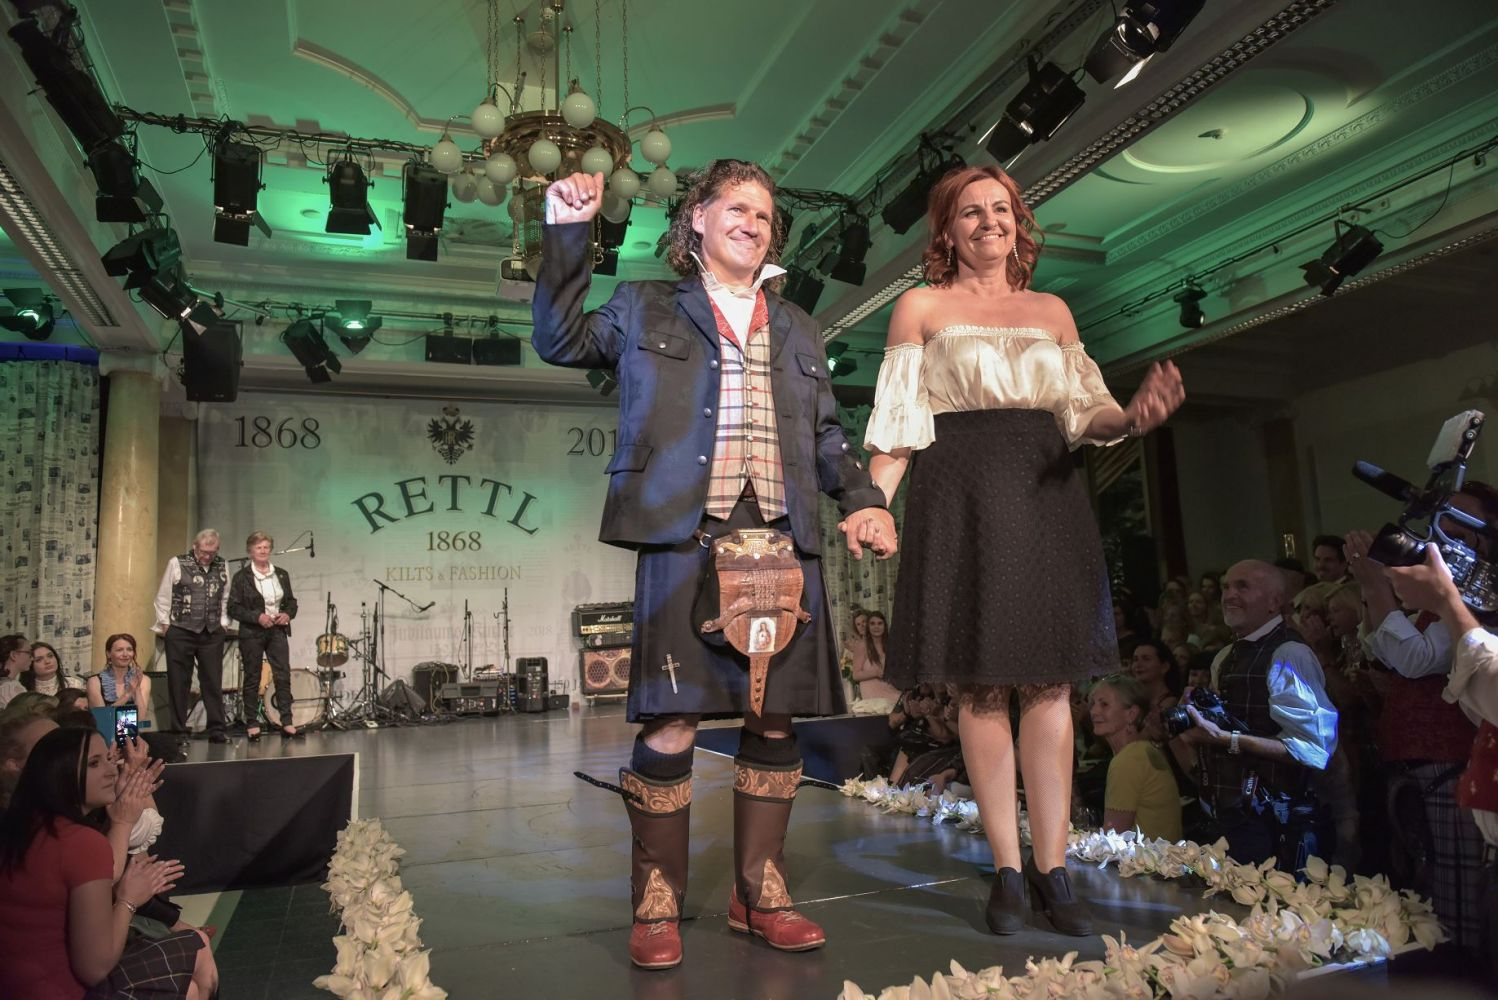 150 Years RETTL | June 2018